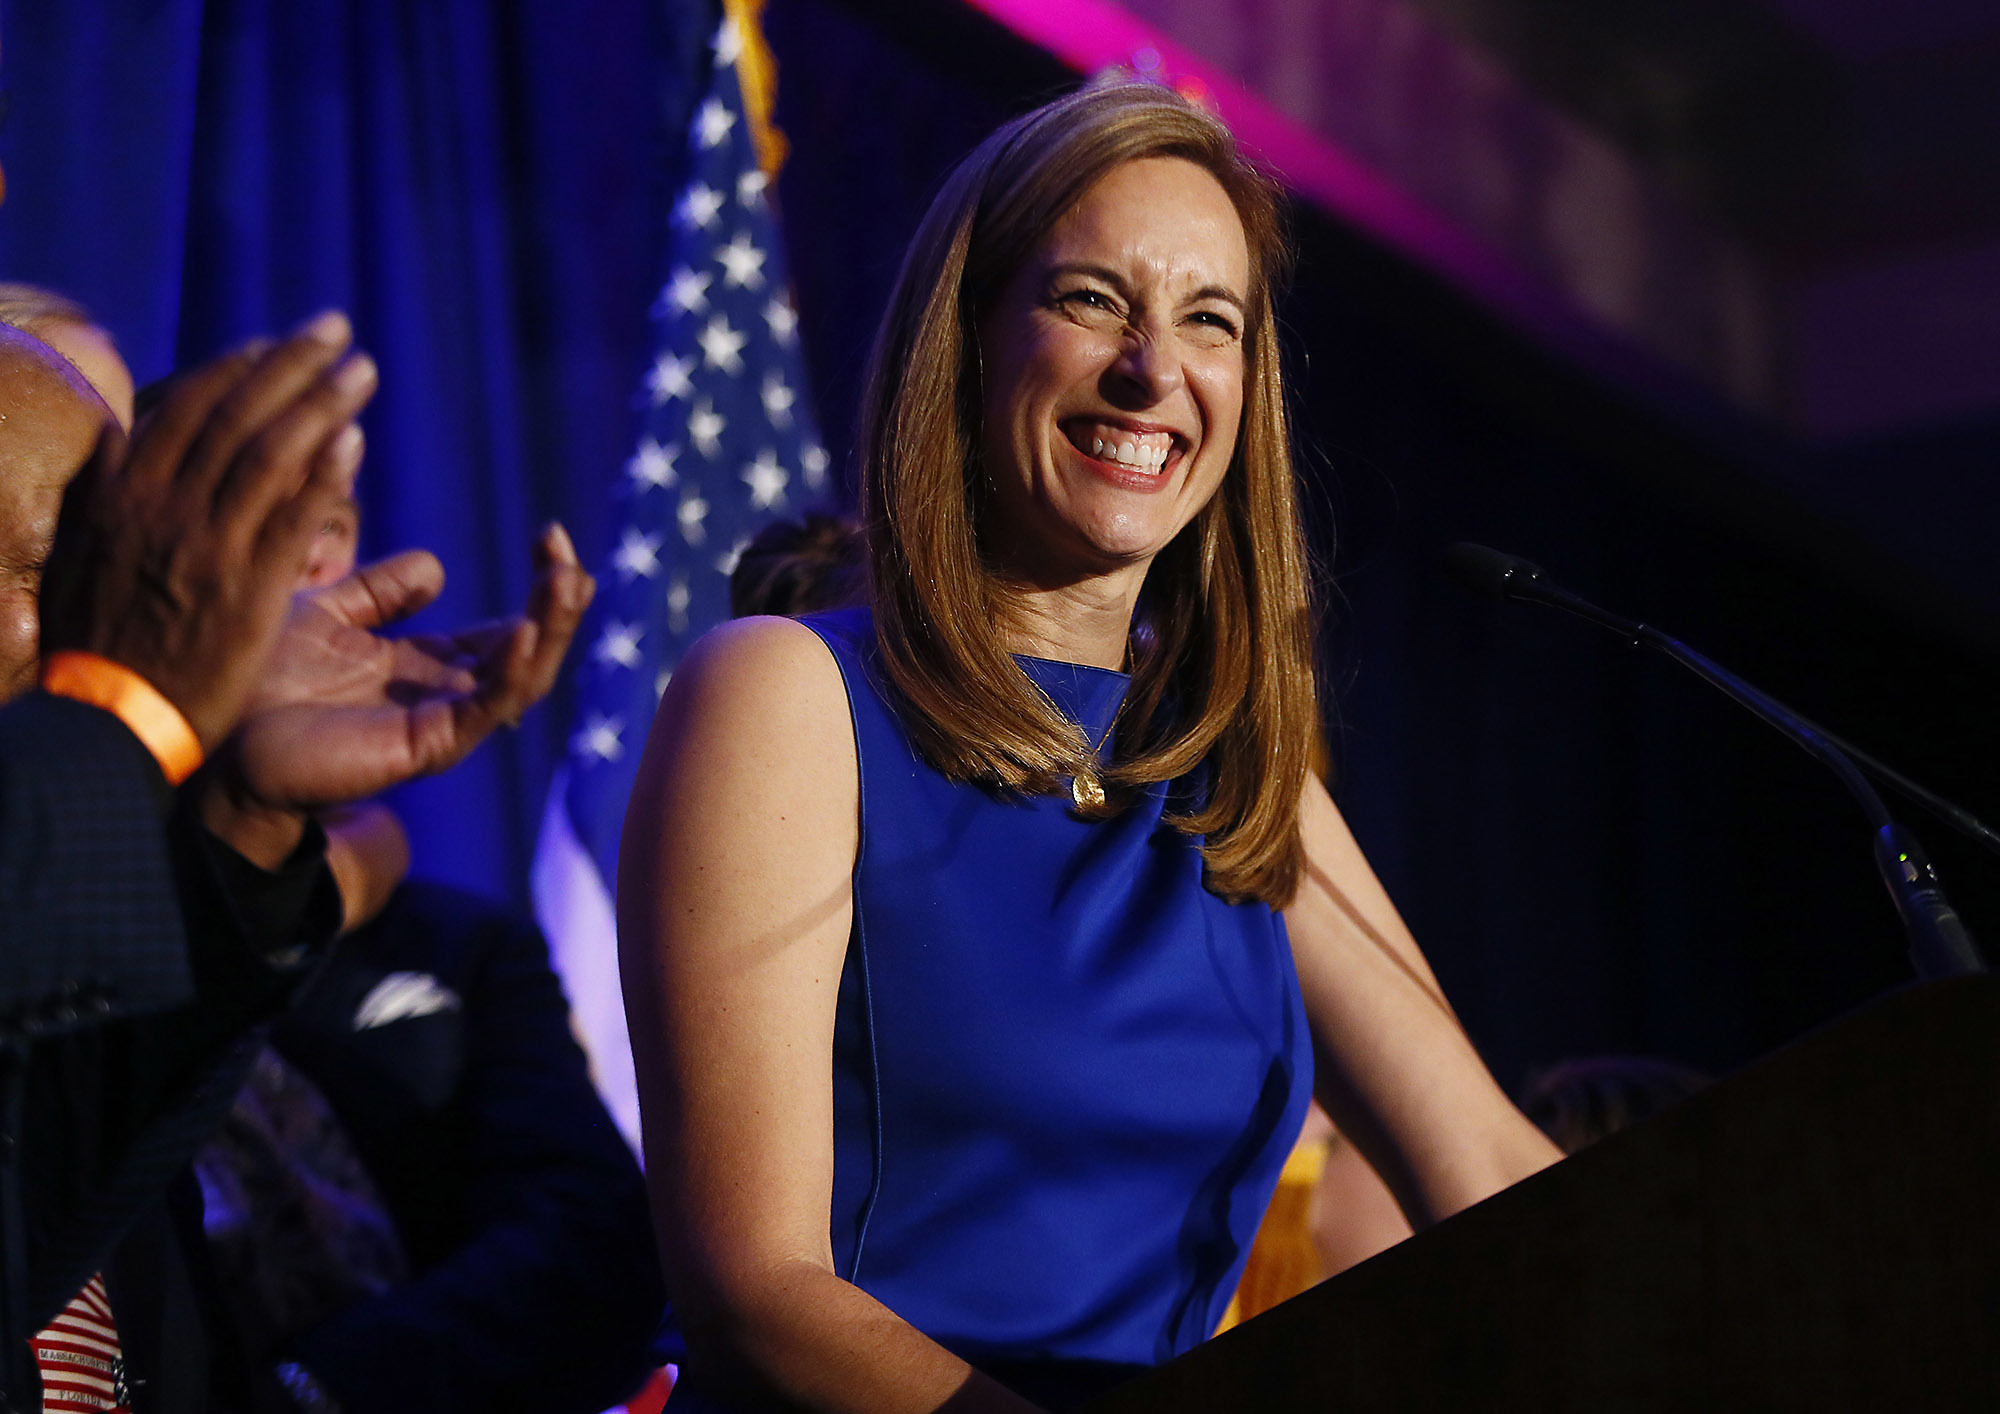 REP. MIKIE SHERRILL - SERVING NEW JERSEY'S 11TH DISTRICT